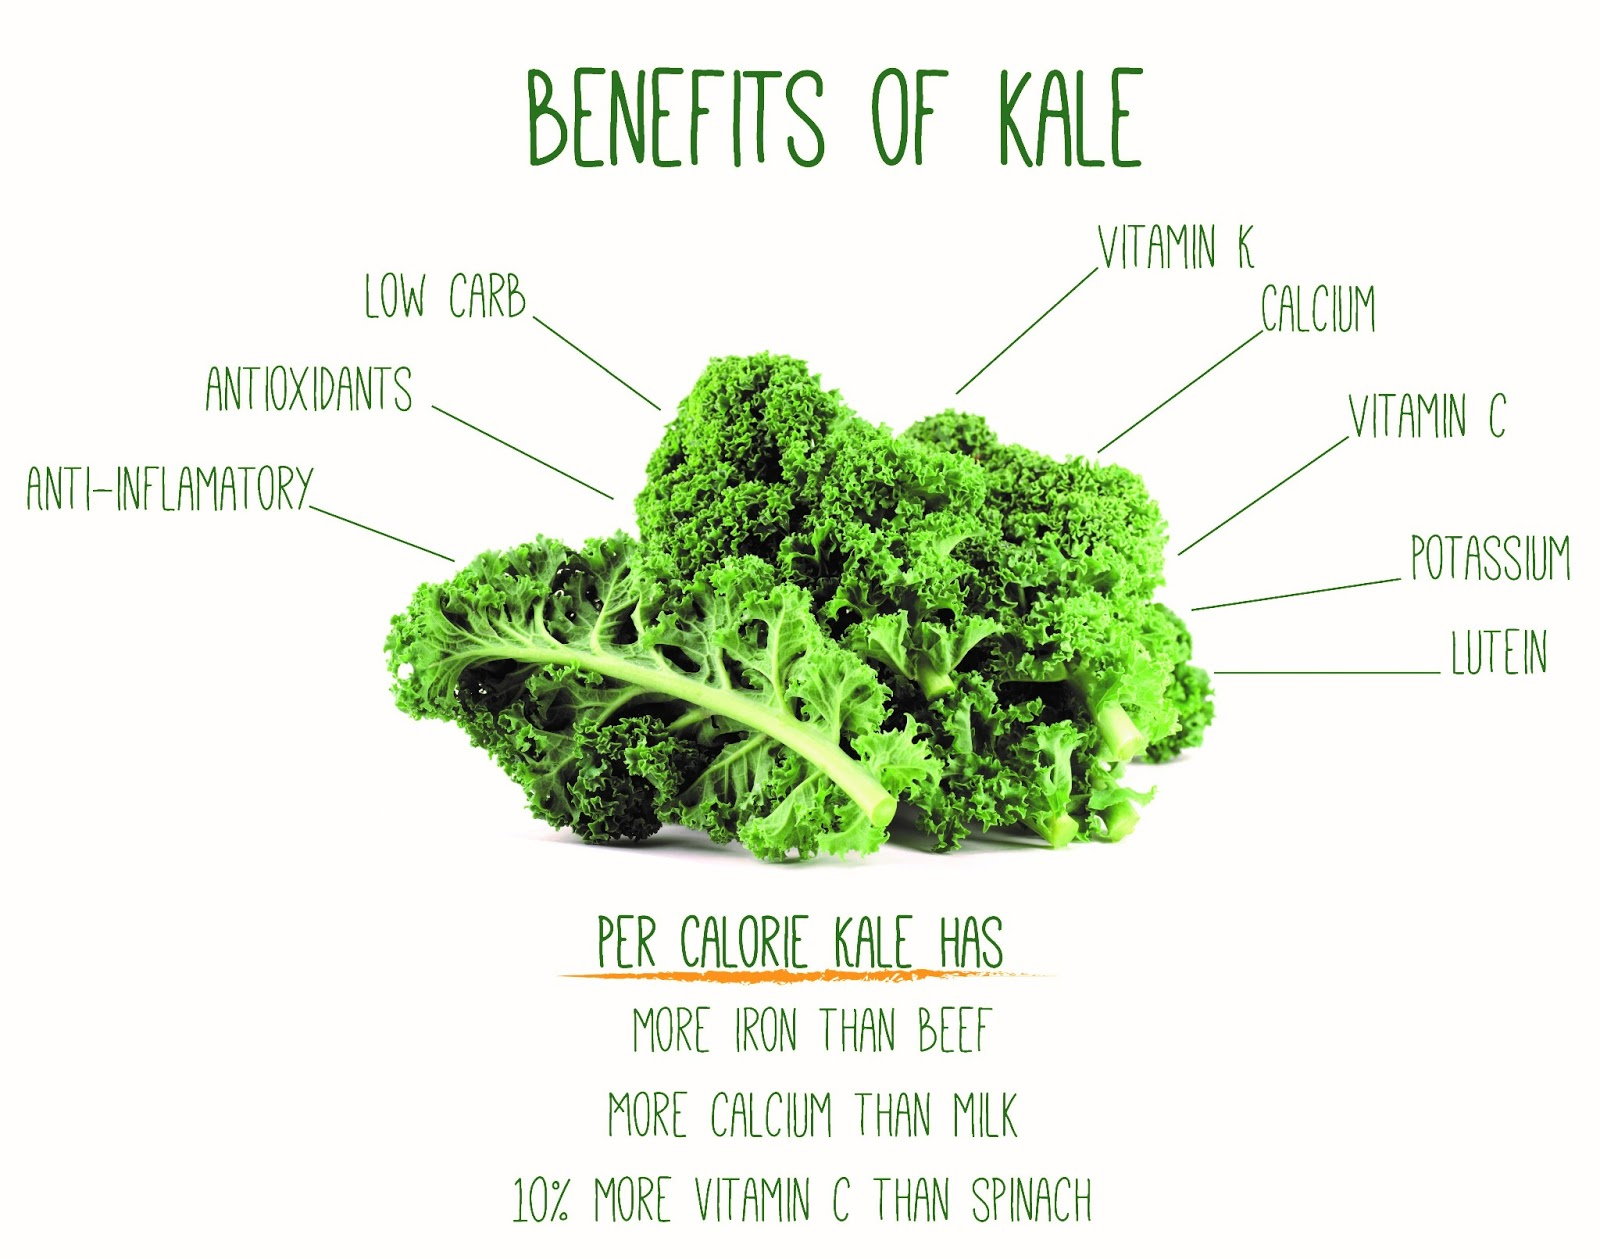 Why is kale so healthy